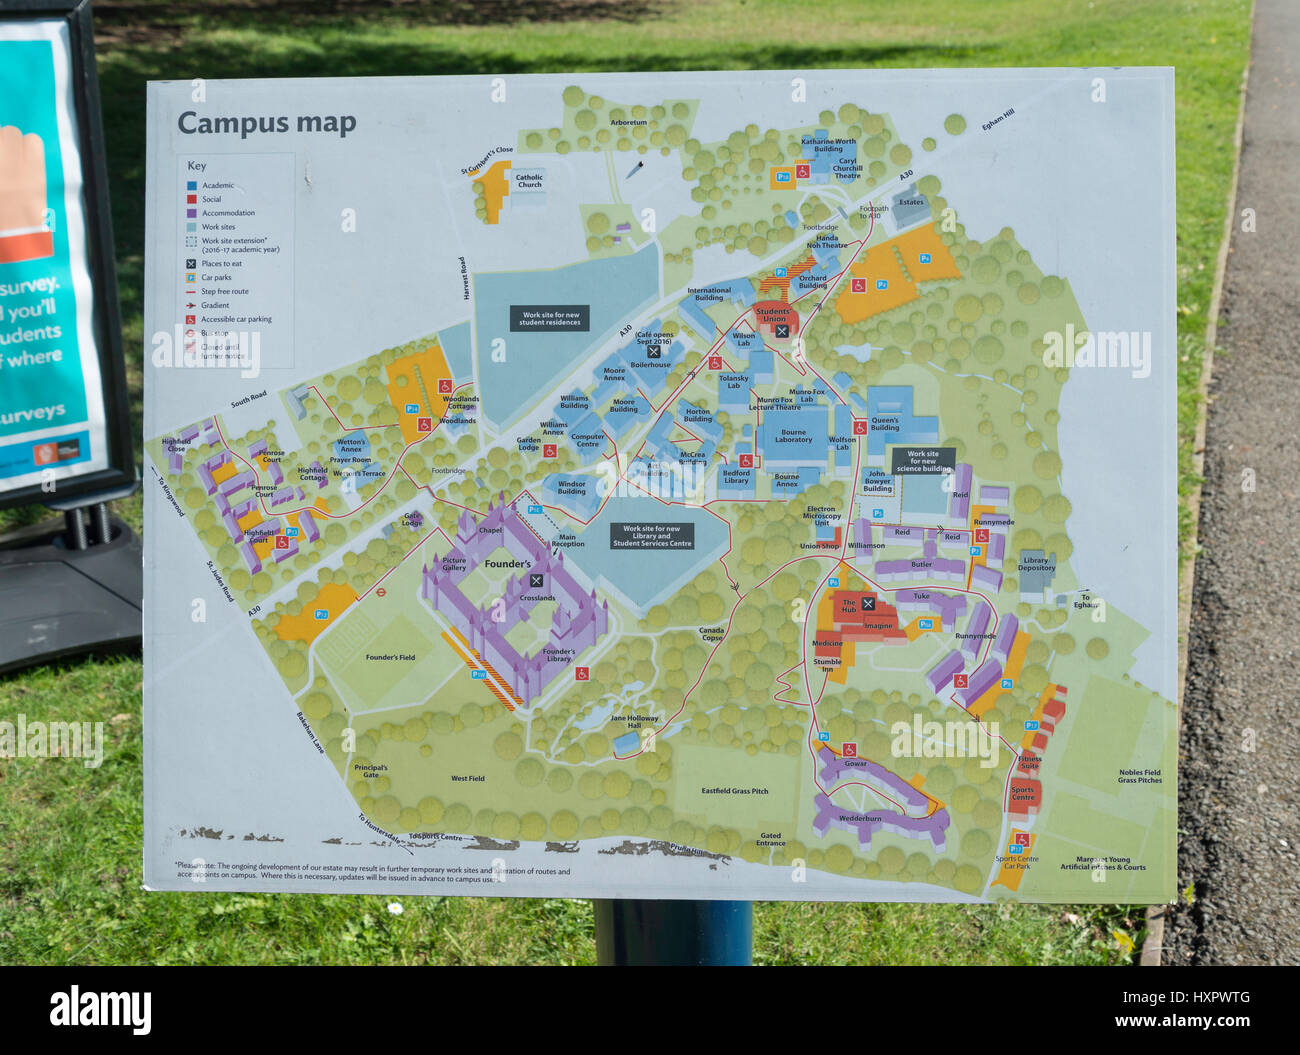 Campus Map Stock Photos & Campus Map Stock Images - Alamy